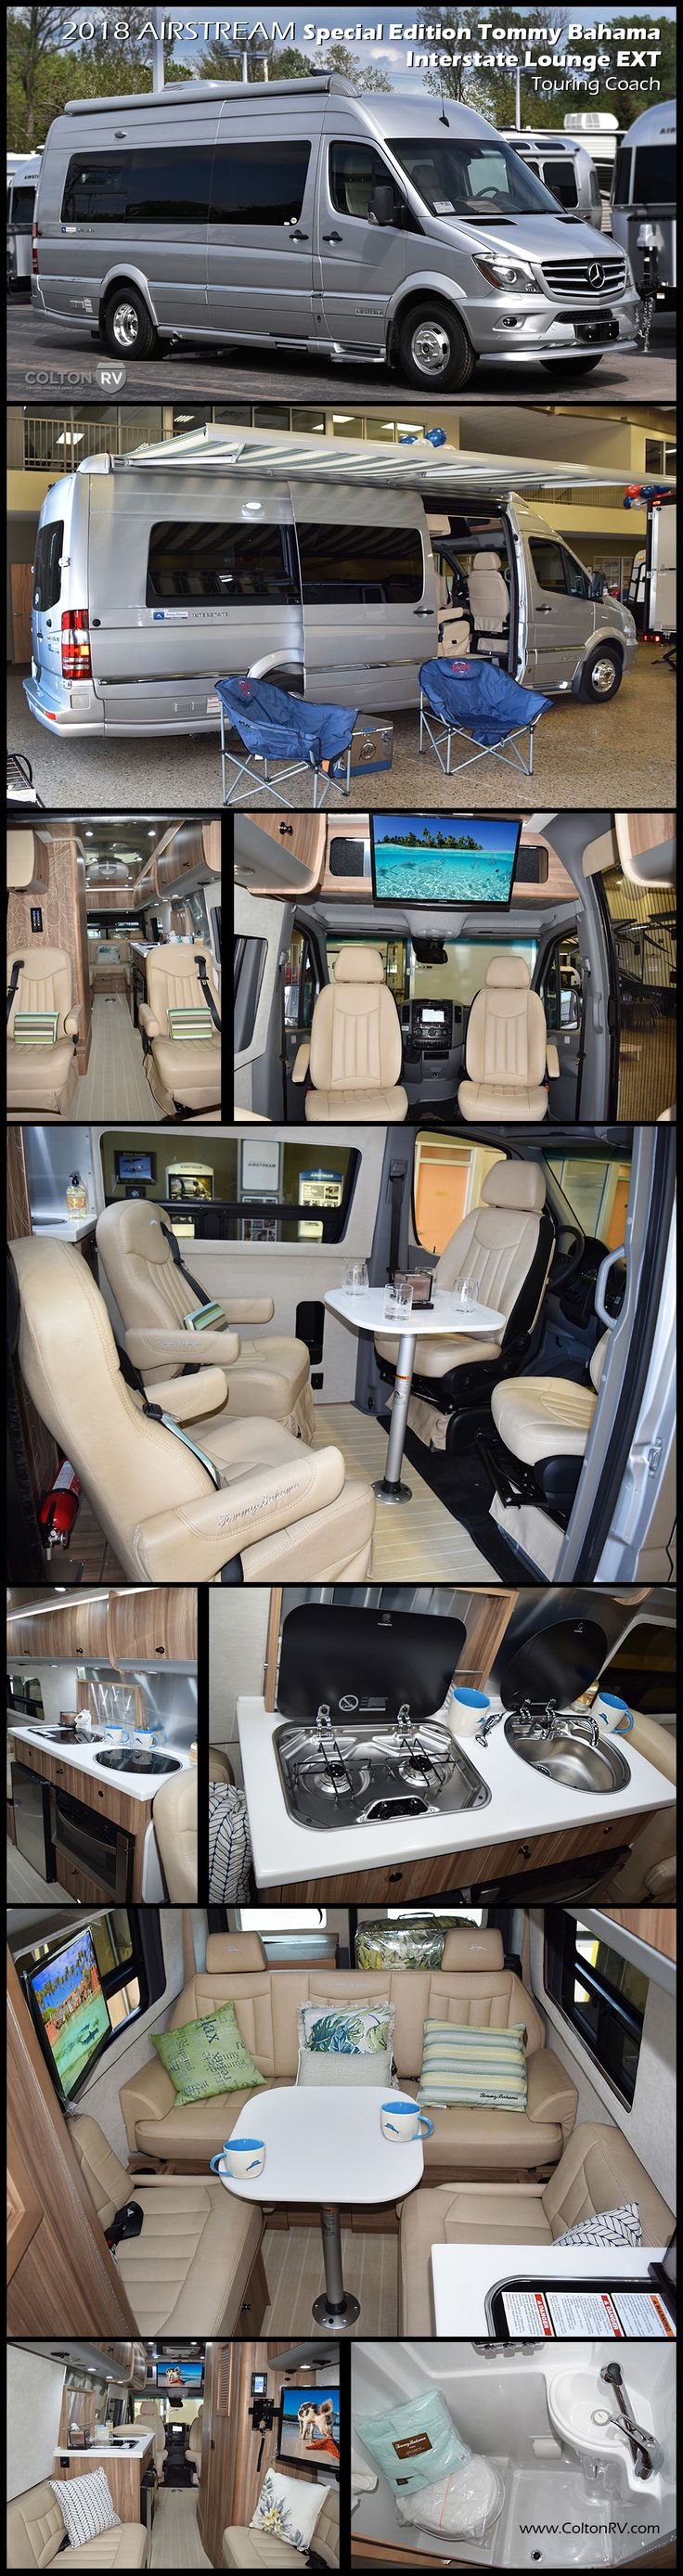 Island life is here. Tommy Bahama and Airstream bring iconic quality and comfortable ease together beautifully in this 2018 AIRSTREAM Special Edition TOMMY BAHAMA Interstate Lounge EXT Touring Coach. Open the rear doors to bring in the ocean breeze and enjoy the powered wood blinds and Tommy Bahama décor accents. This new special edition is built for relaxation and adventure.